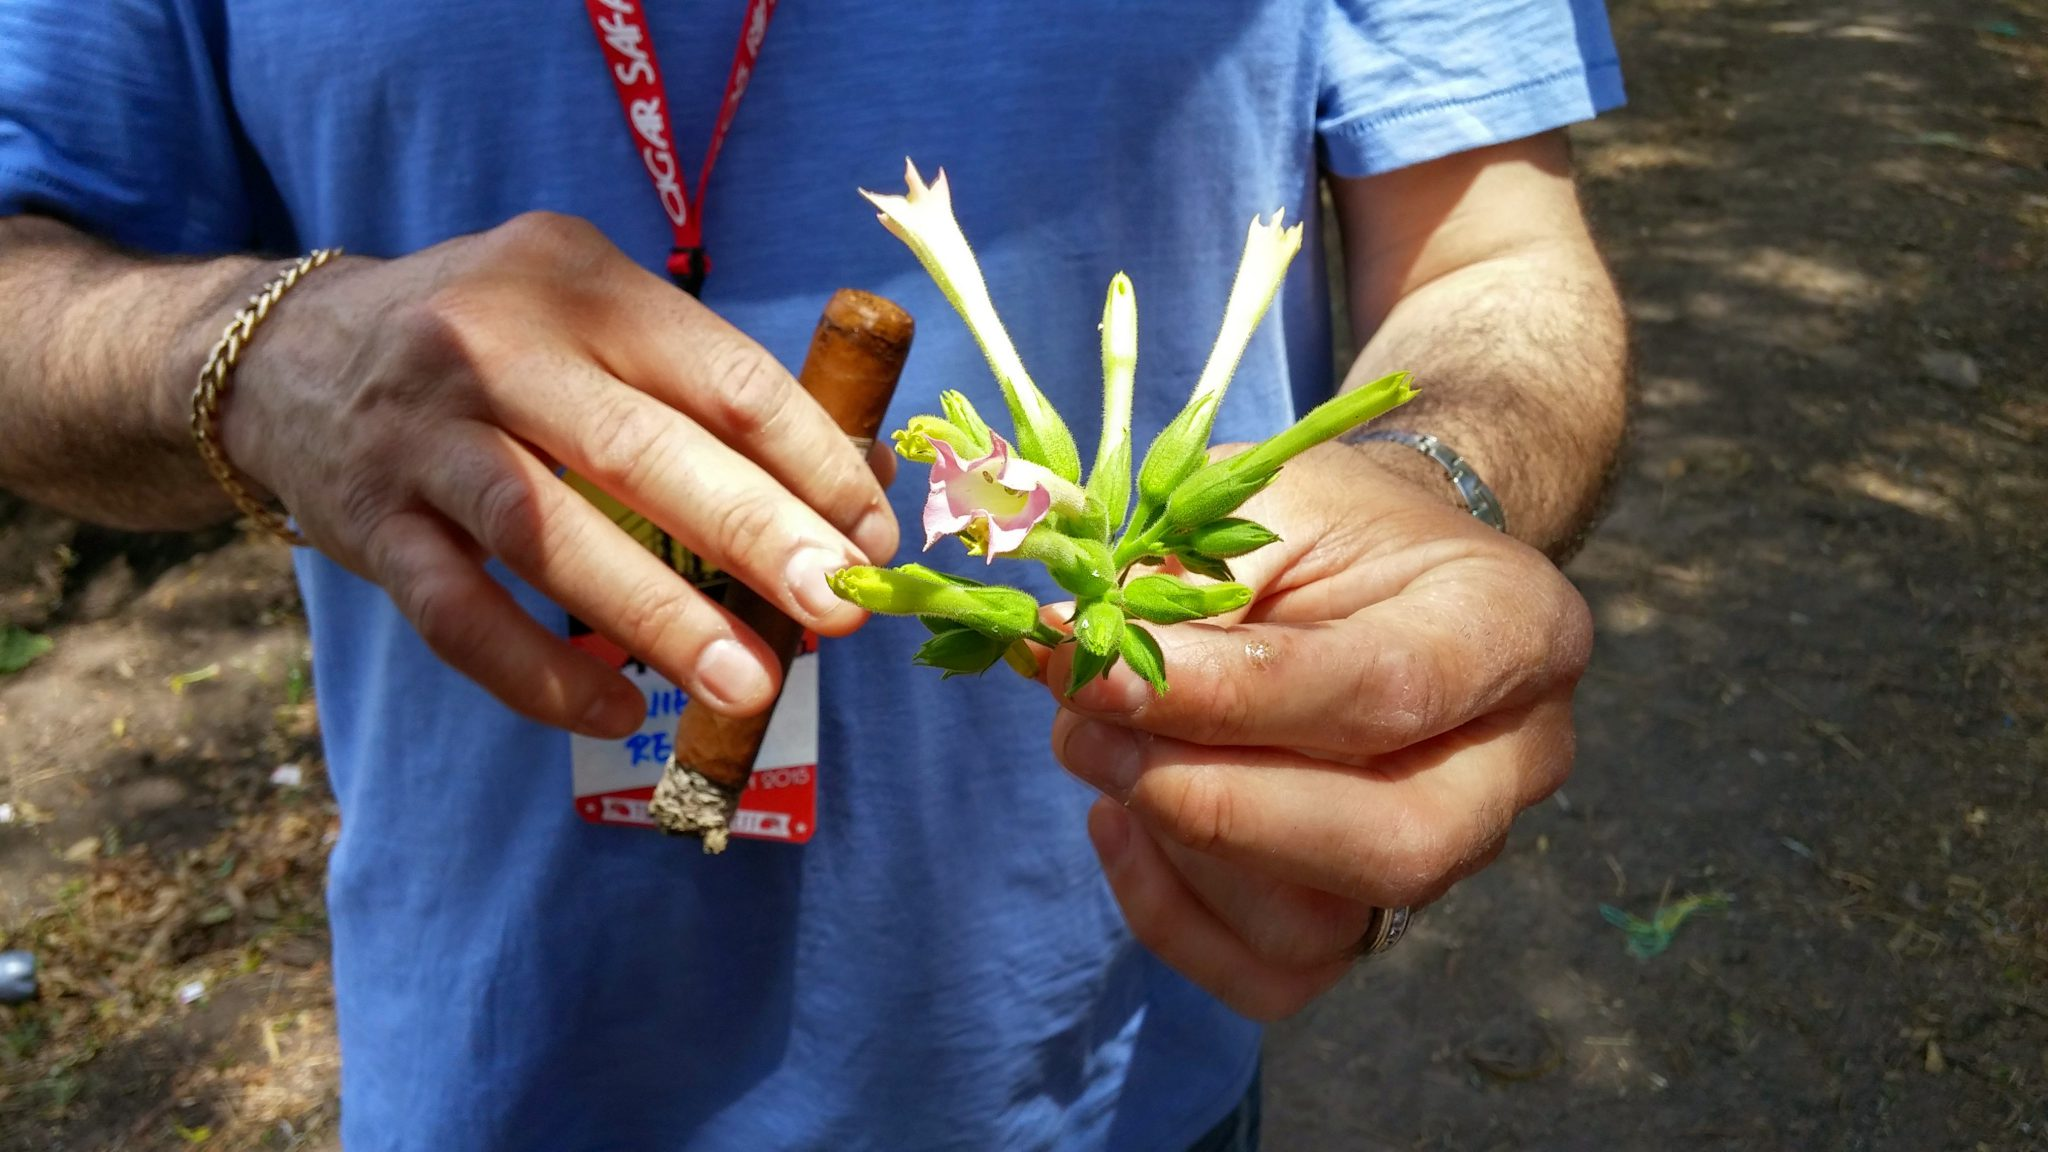 5 things about maduro cigars topped tobacco flowers